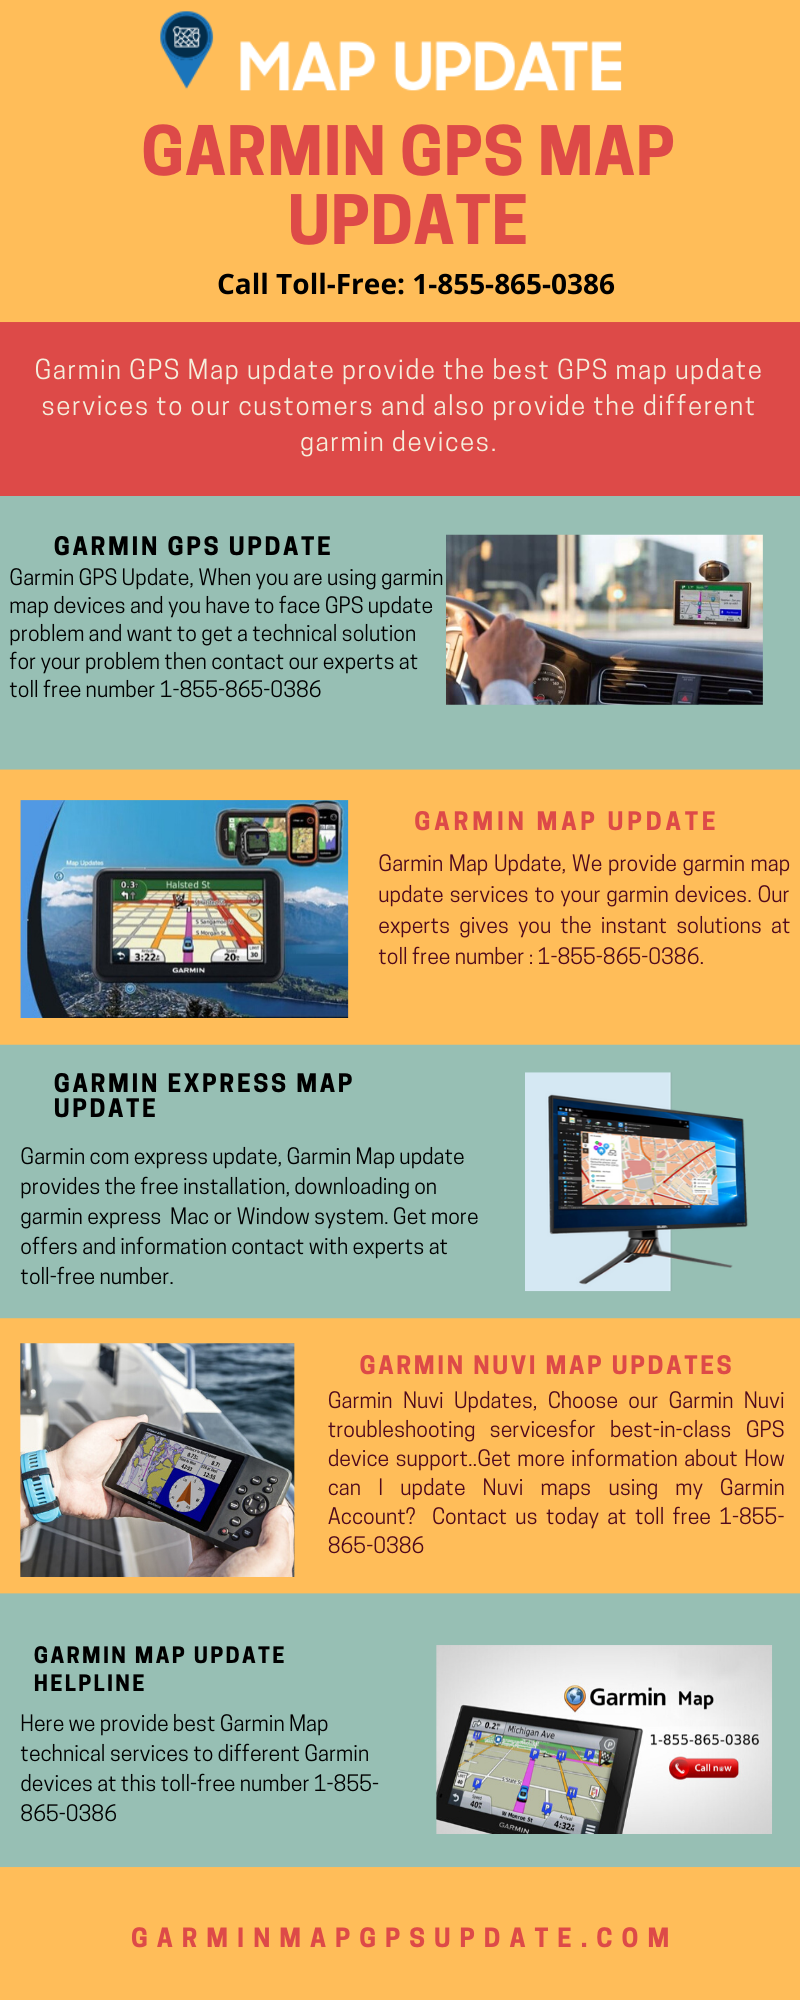 Garmin Map Update Canada Garmin GPS Map Update in 2020 | Gps map, Garmin gps maps, Garmin gps